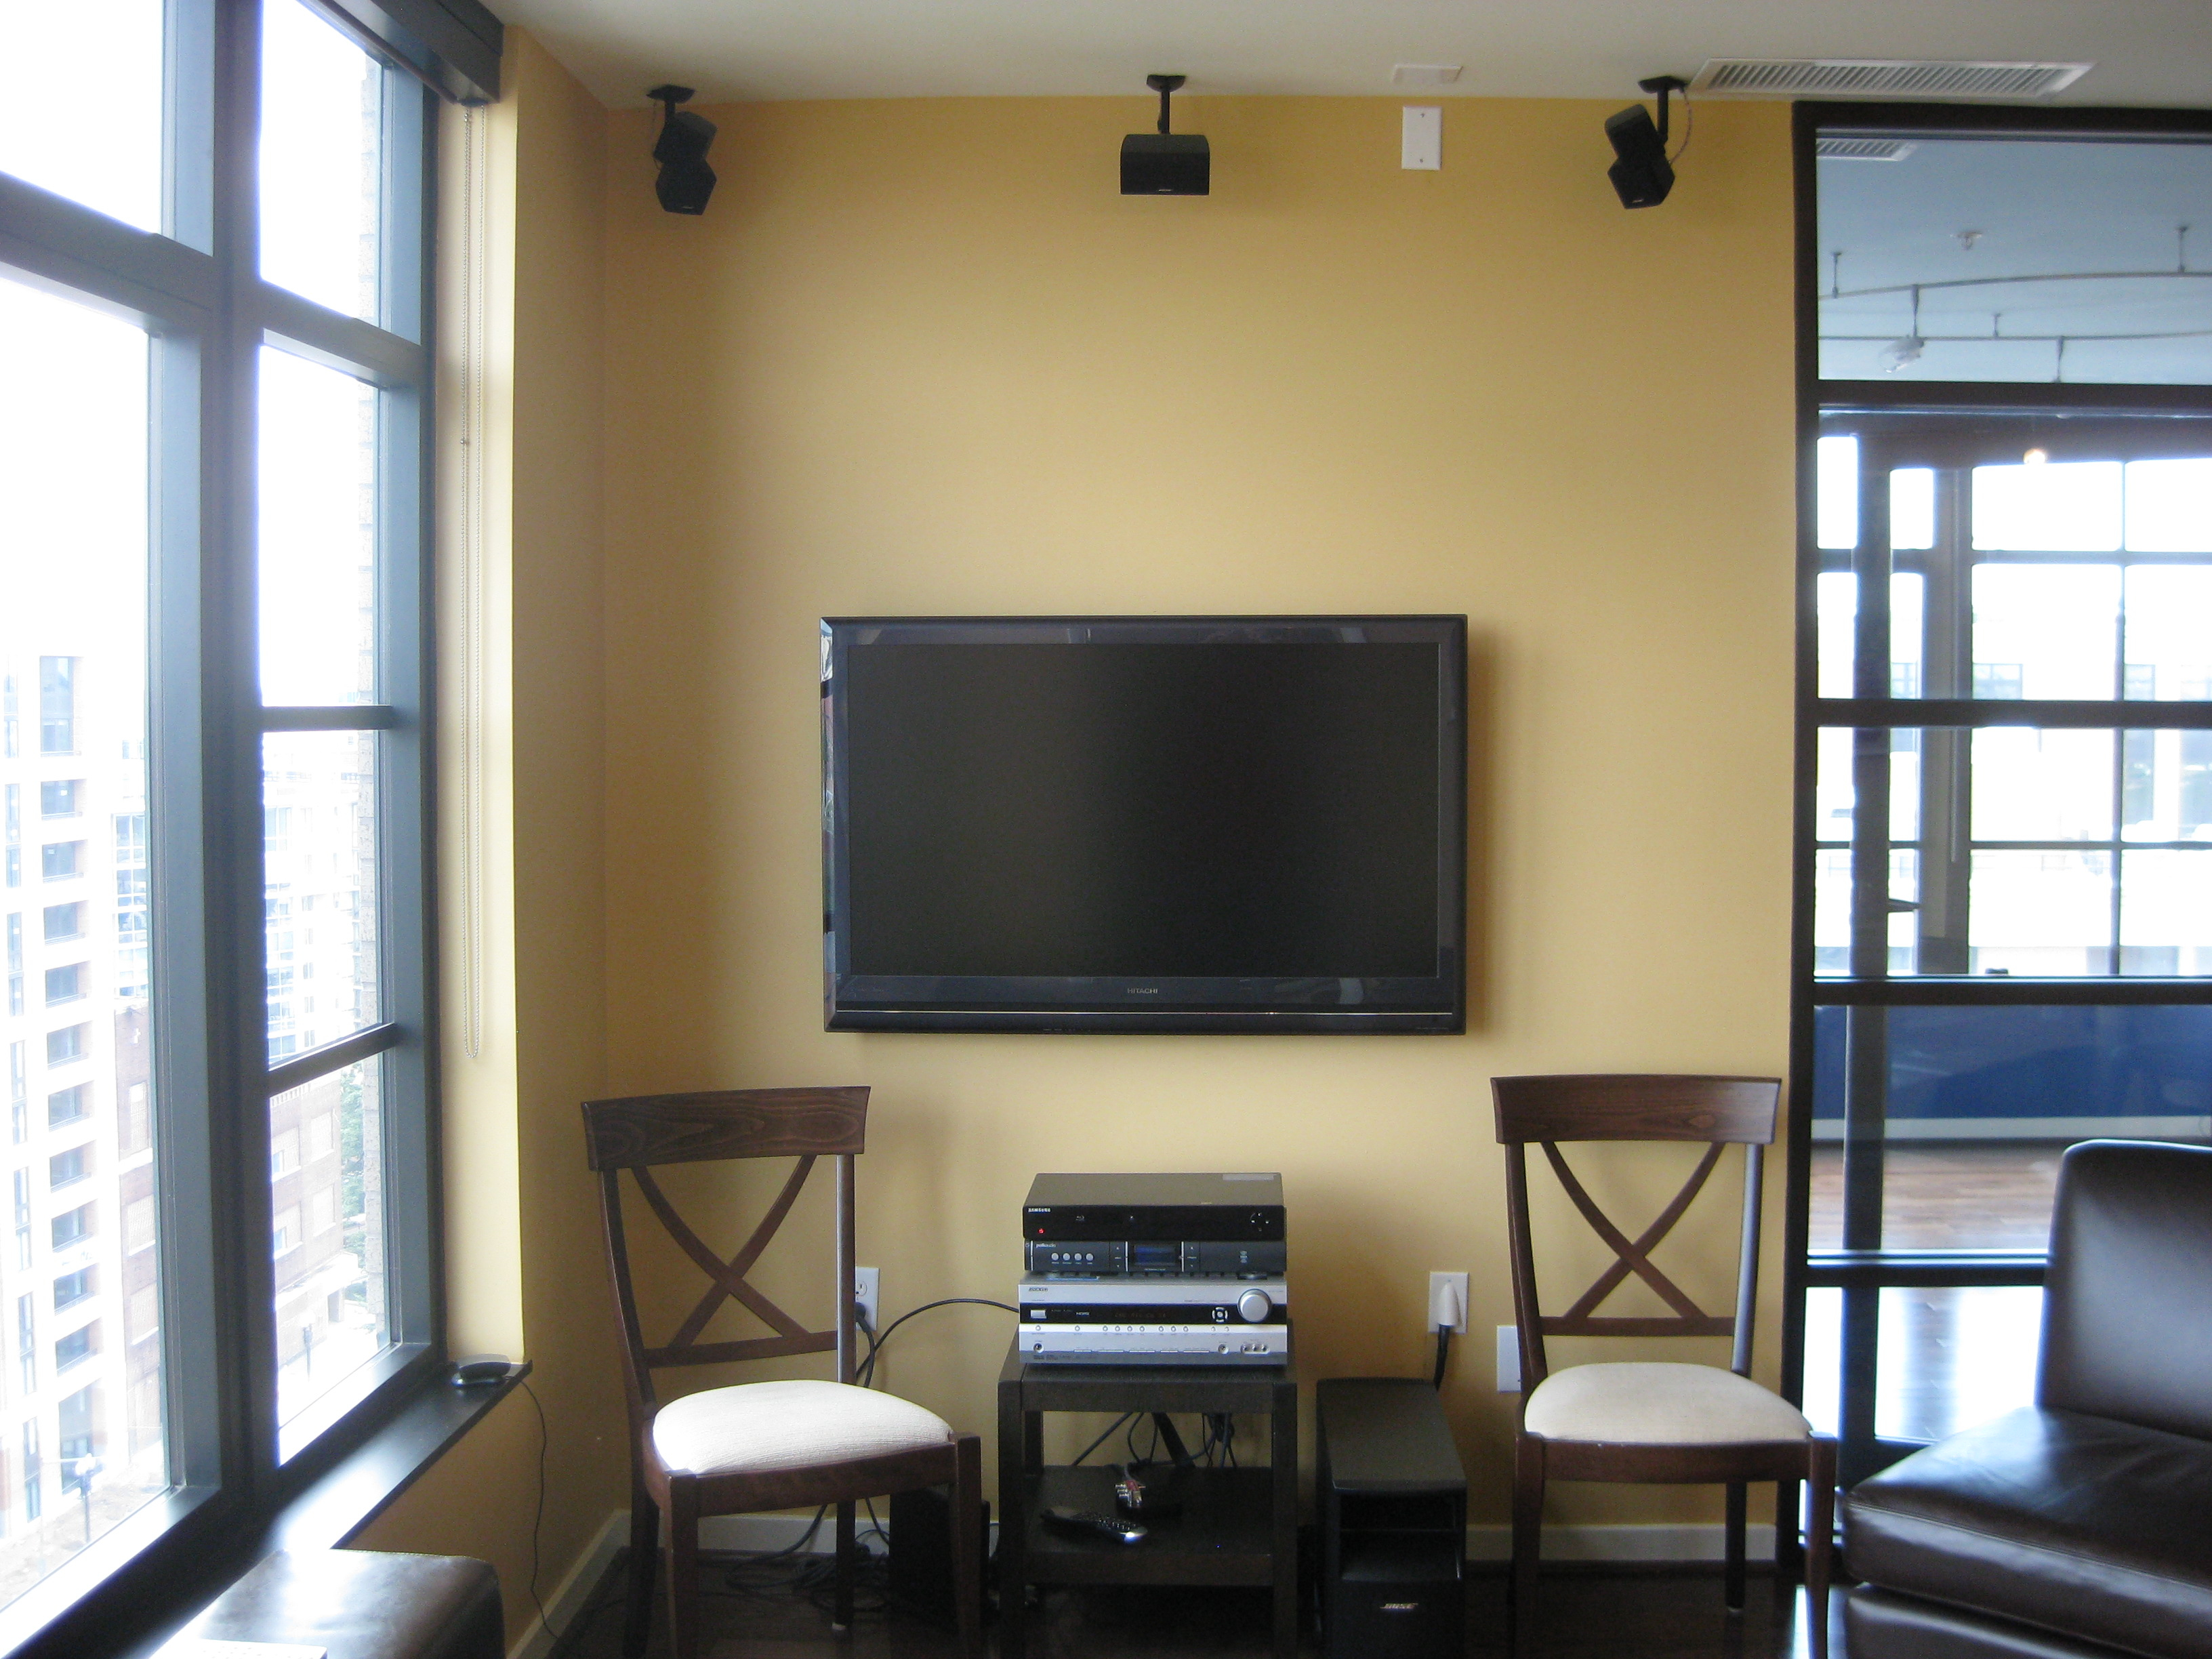 The Hdtv Goes With Apartment